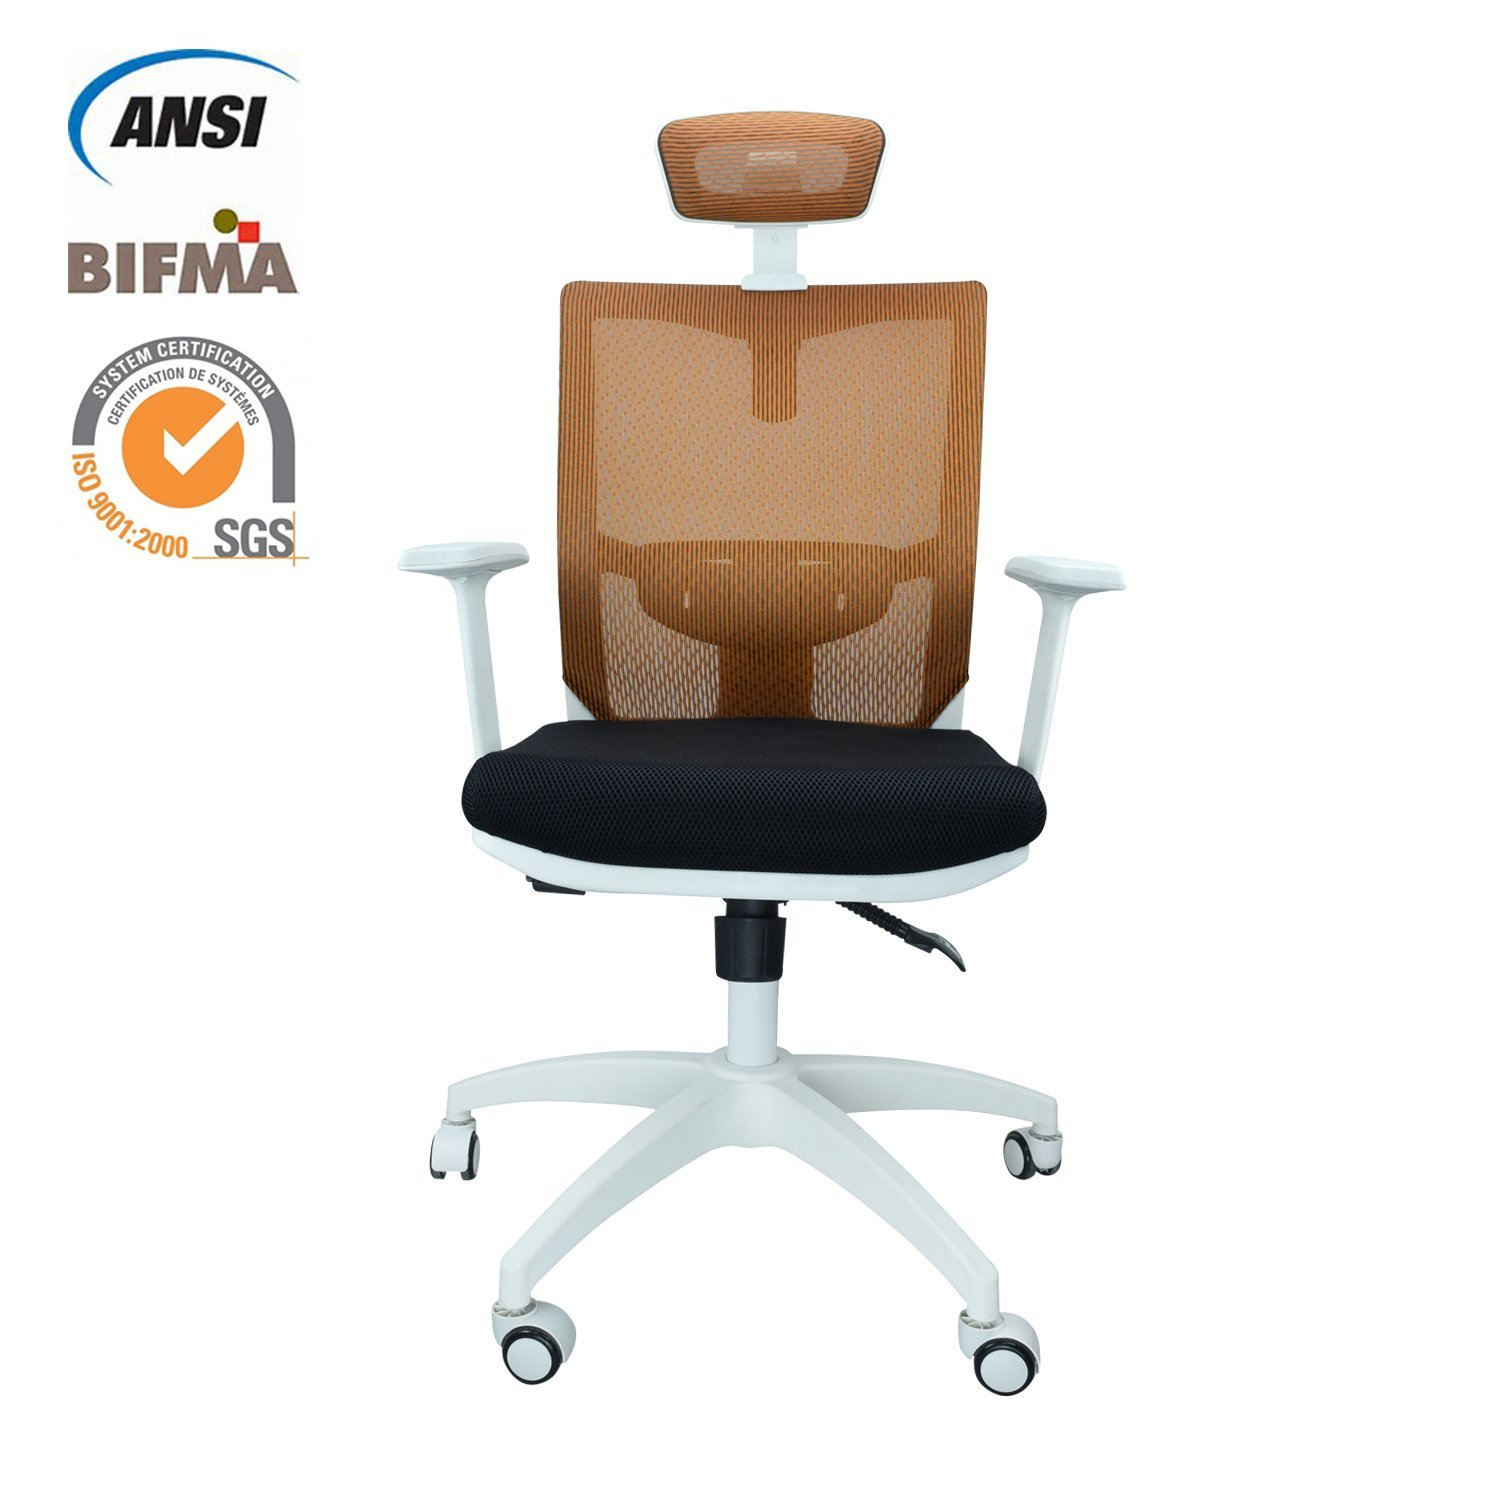 The Arm Rests Provide Good Support To Shoulders Steel And Nylon Casters Make Chair Movement Easier Padded Comfort Of Pu Fabric Makes An